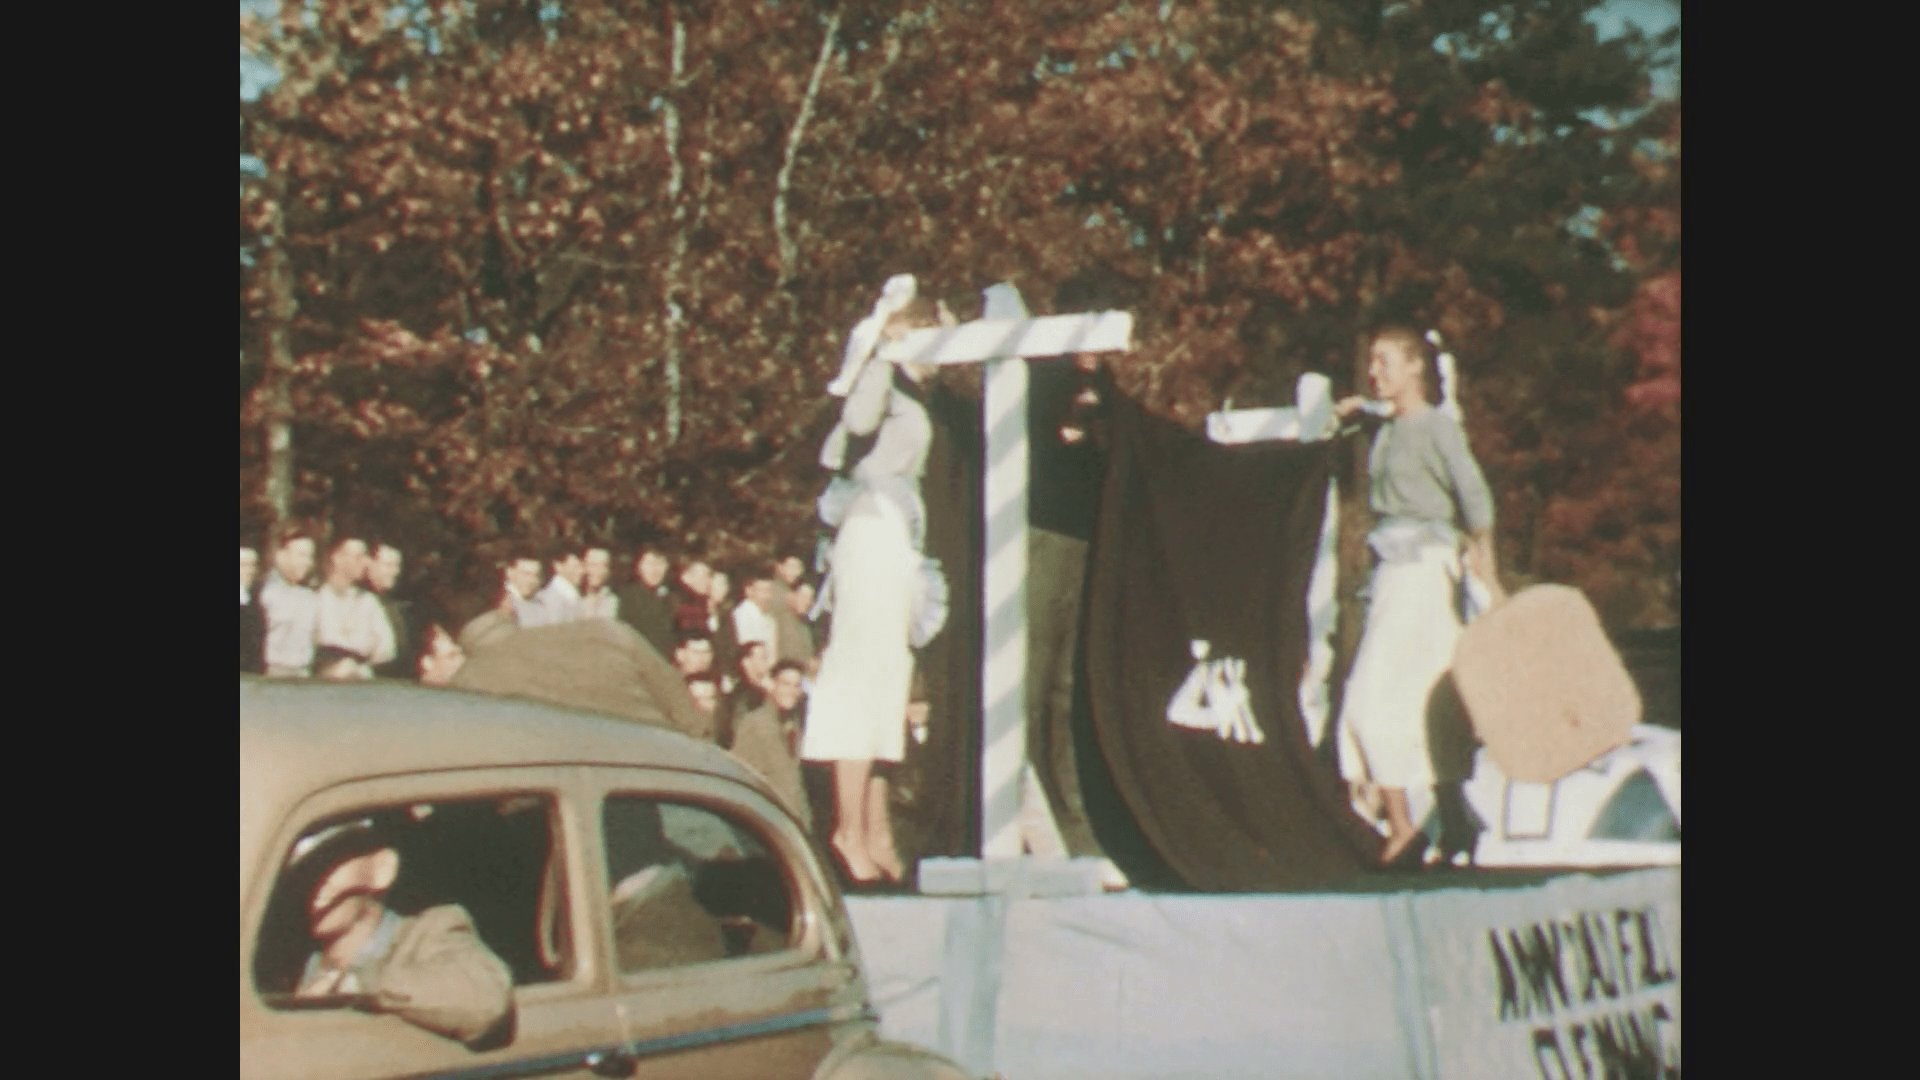 Best 1950S Women Sp*Nk Duke Devil With Paddles In Parade Men With Pictures